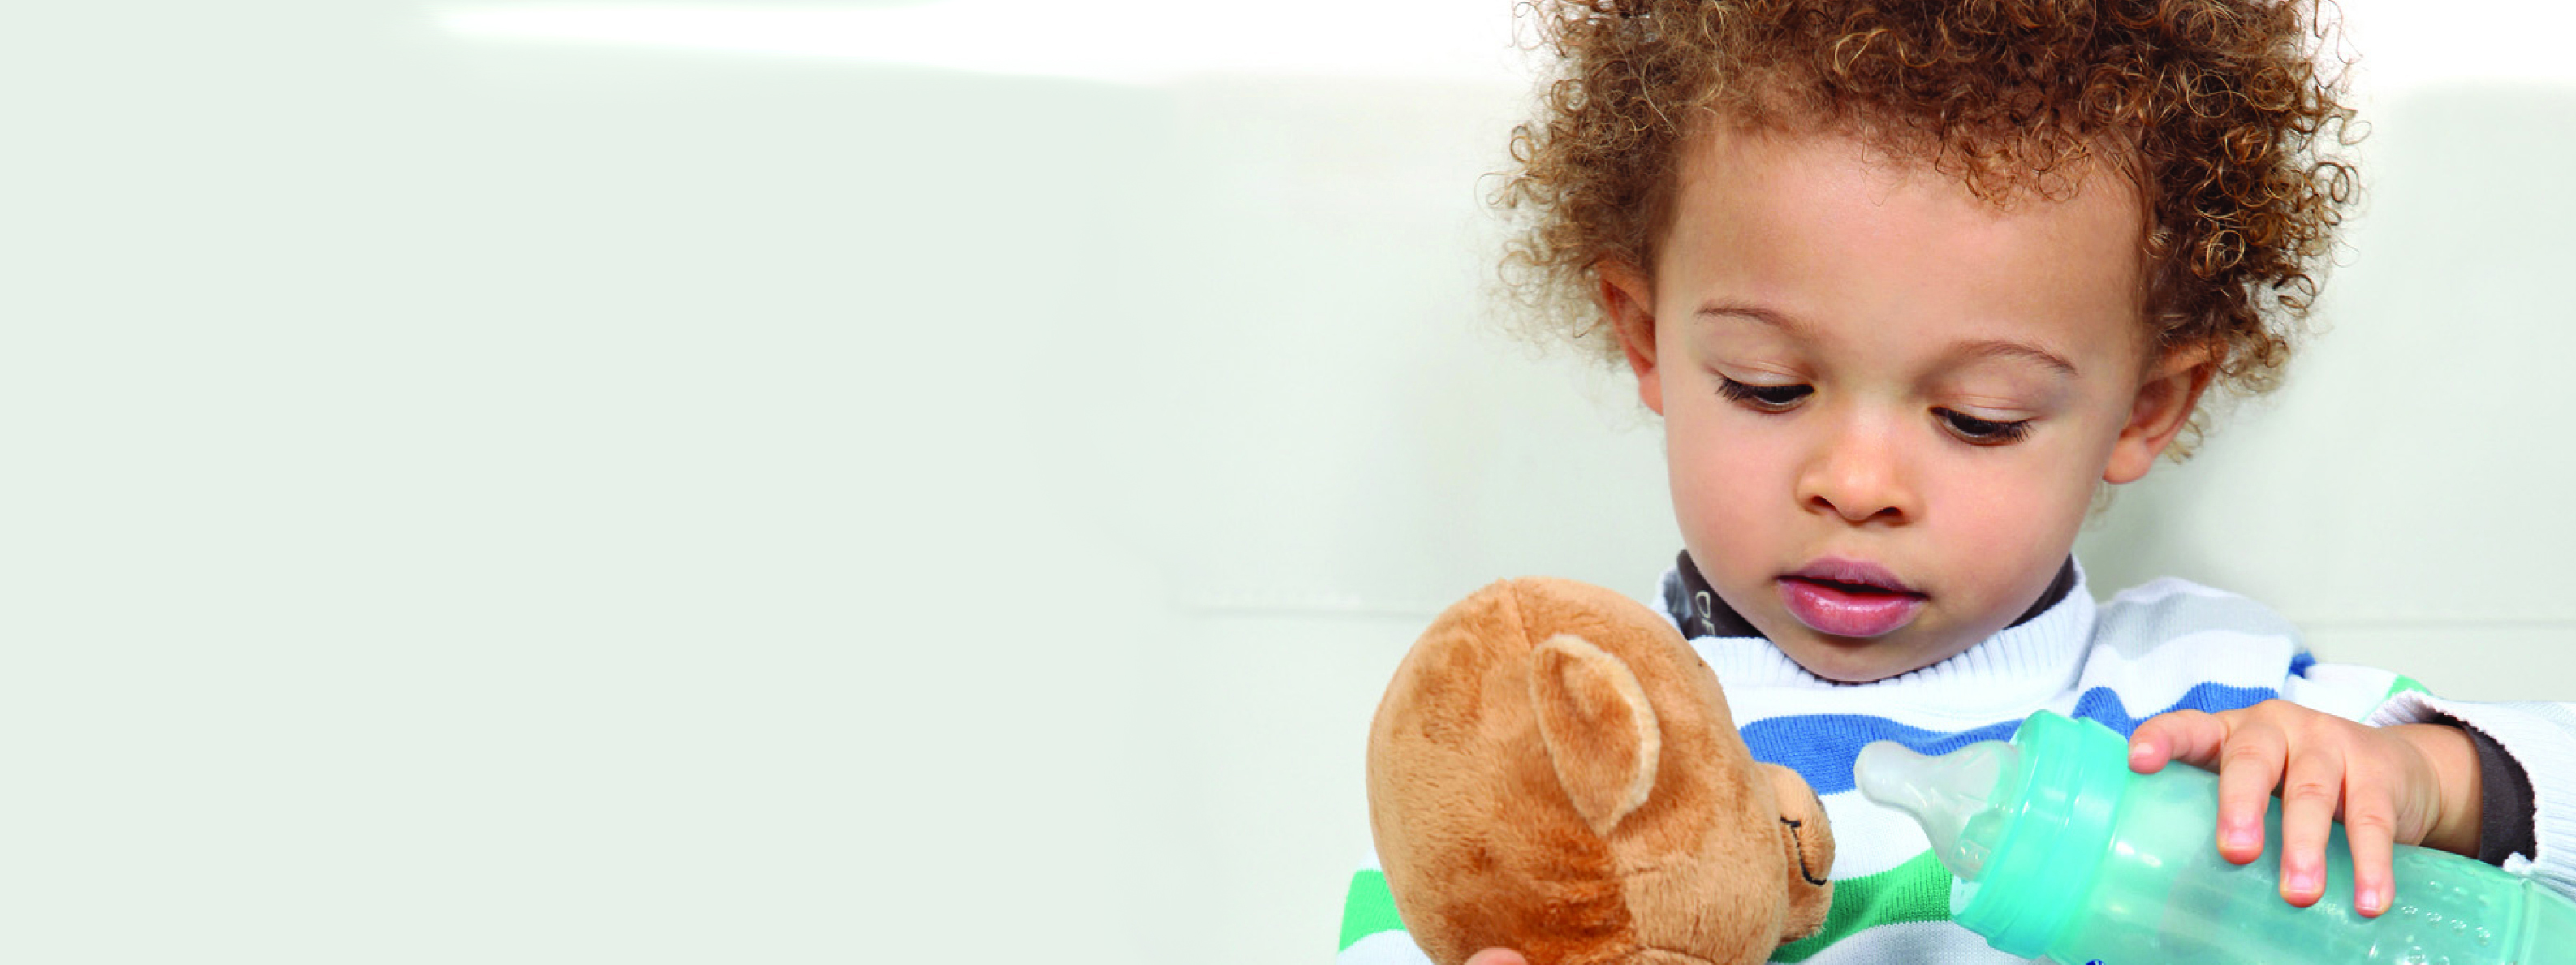 Supporting Children's Experiences of Loss and Separation